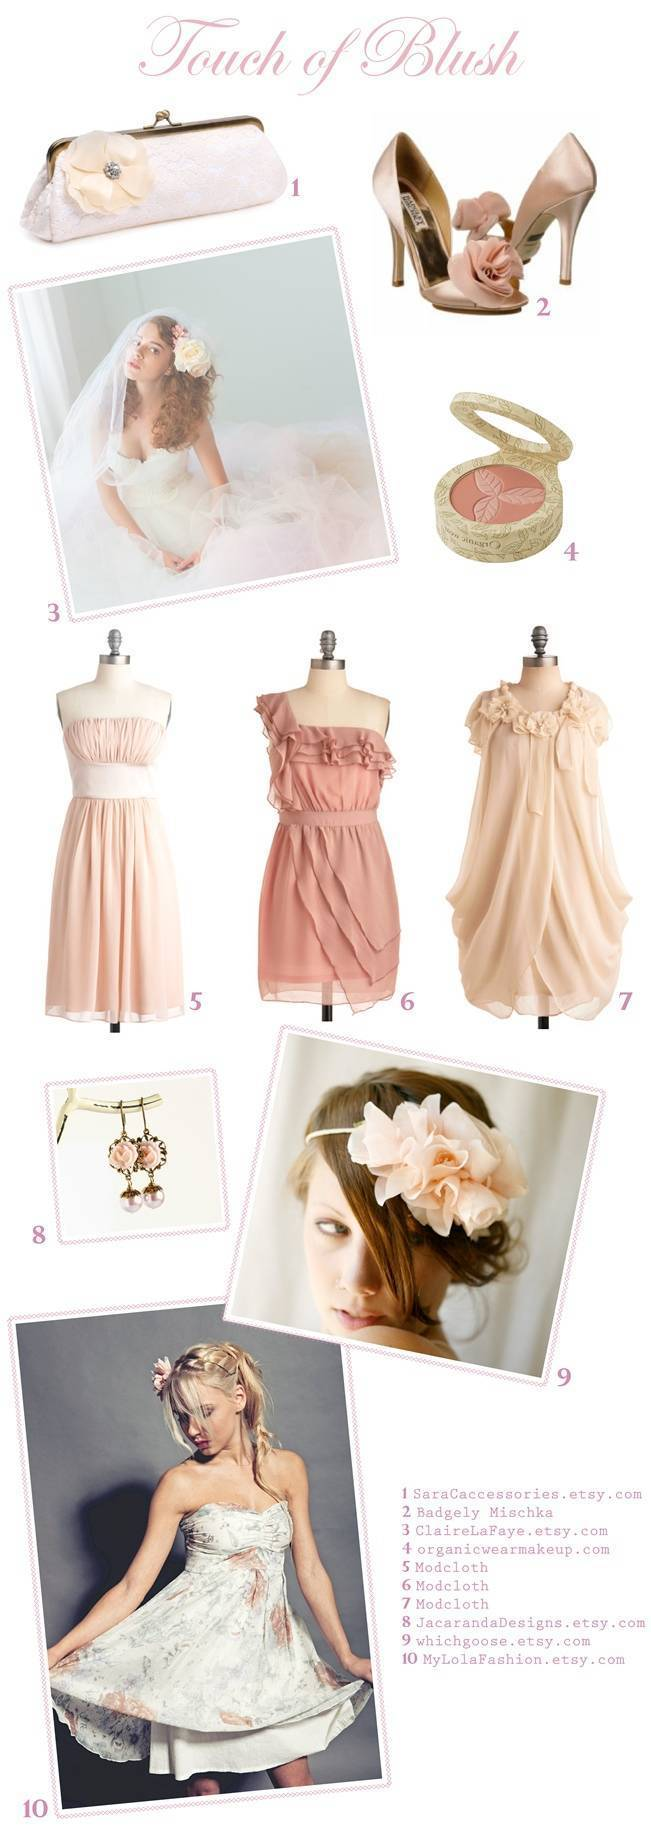 Color Inspiration - Touch of Blush